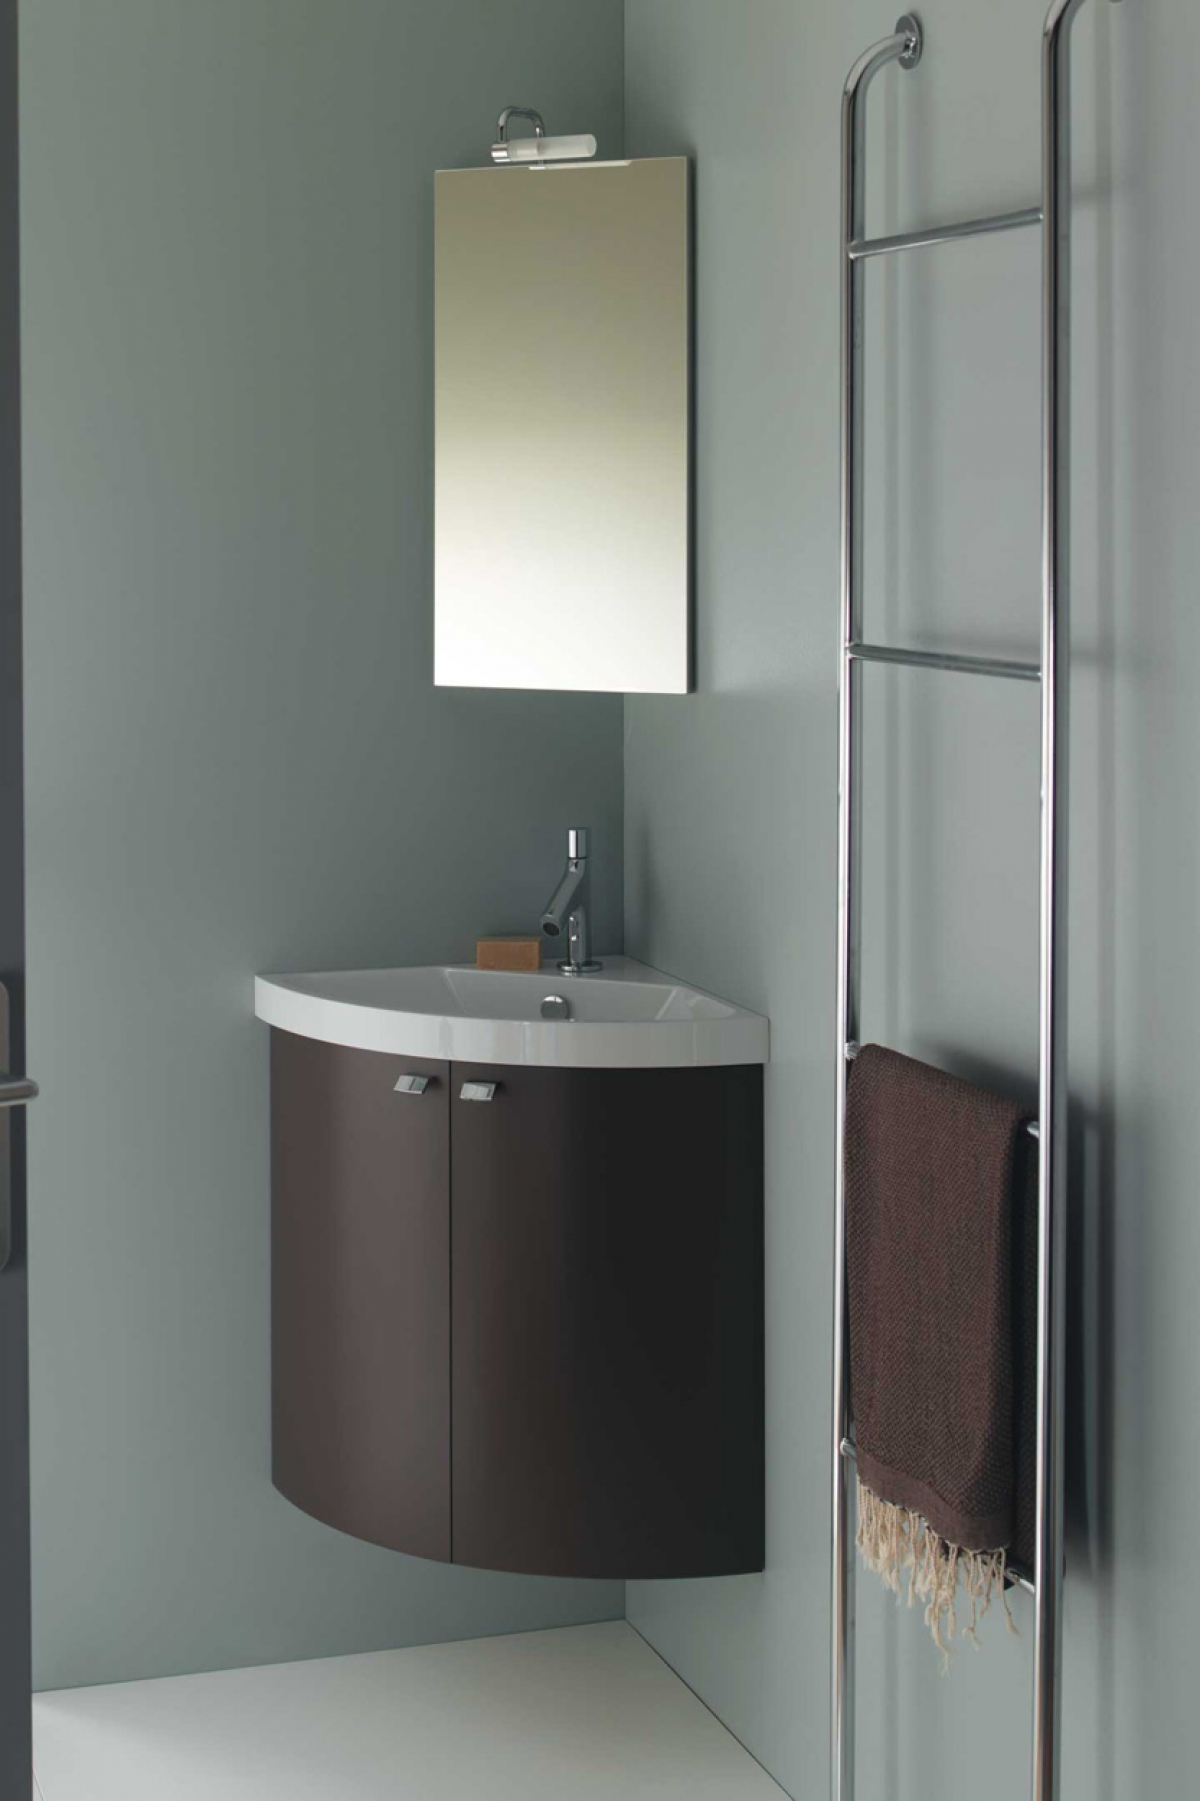 Ensemble Lave Mains Et Miroir Pop Angle SANIJURA